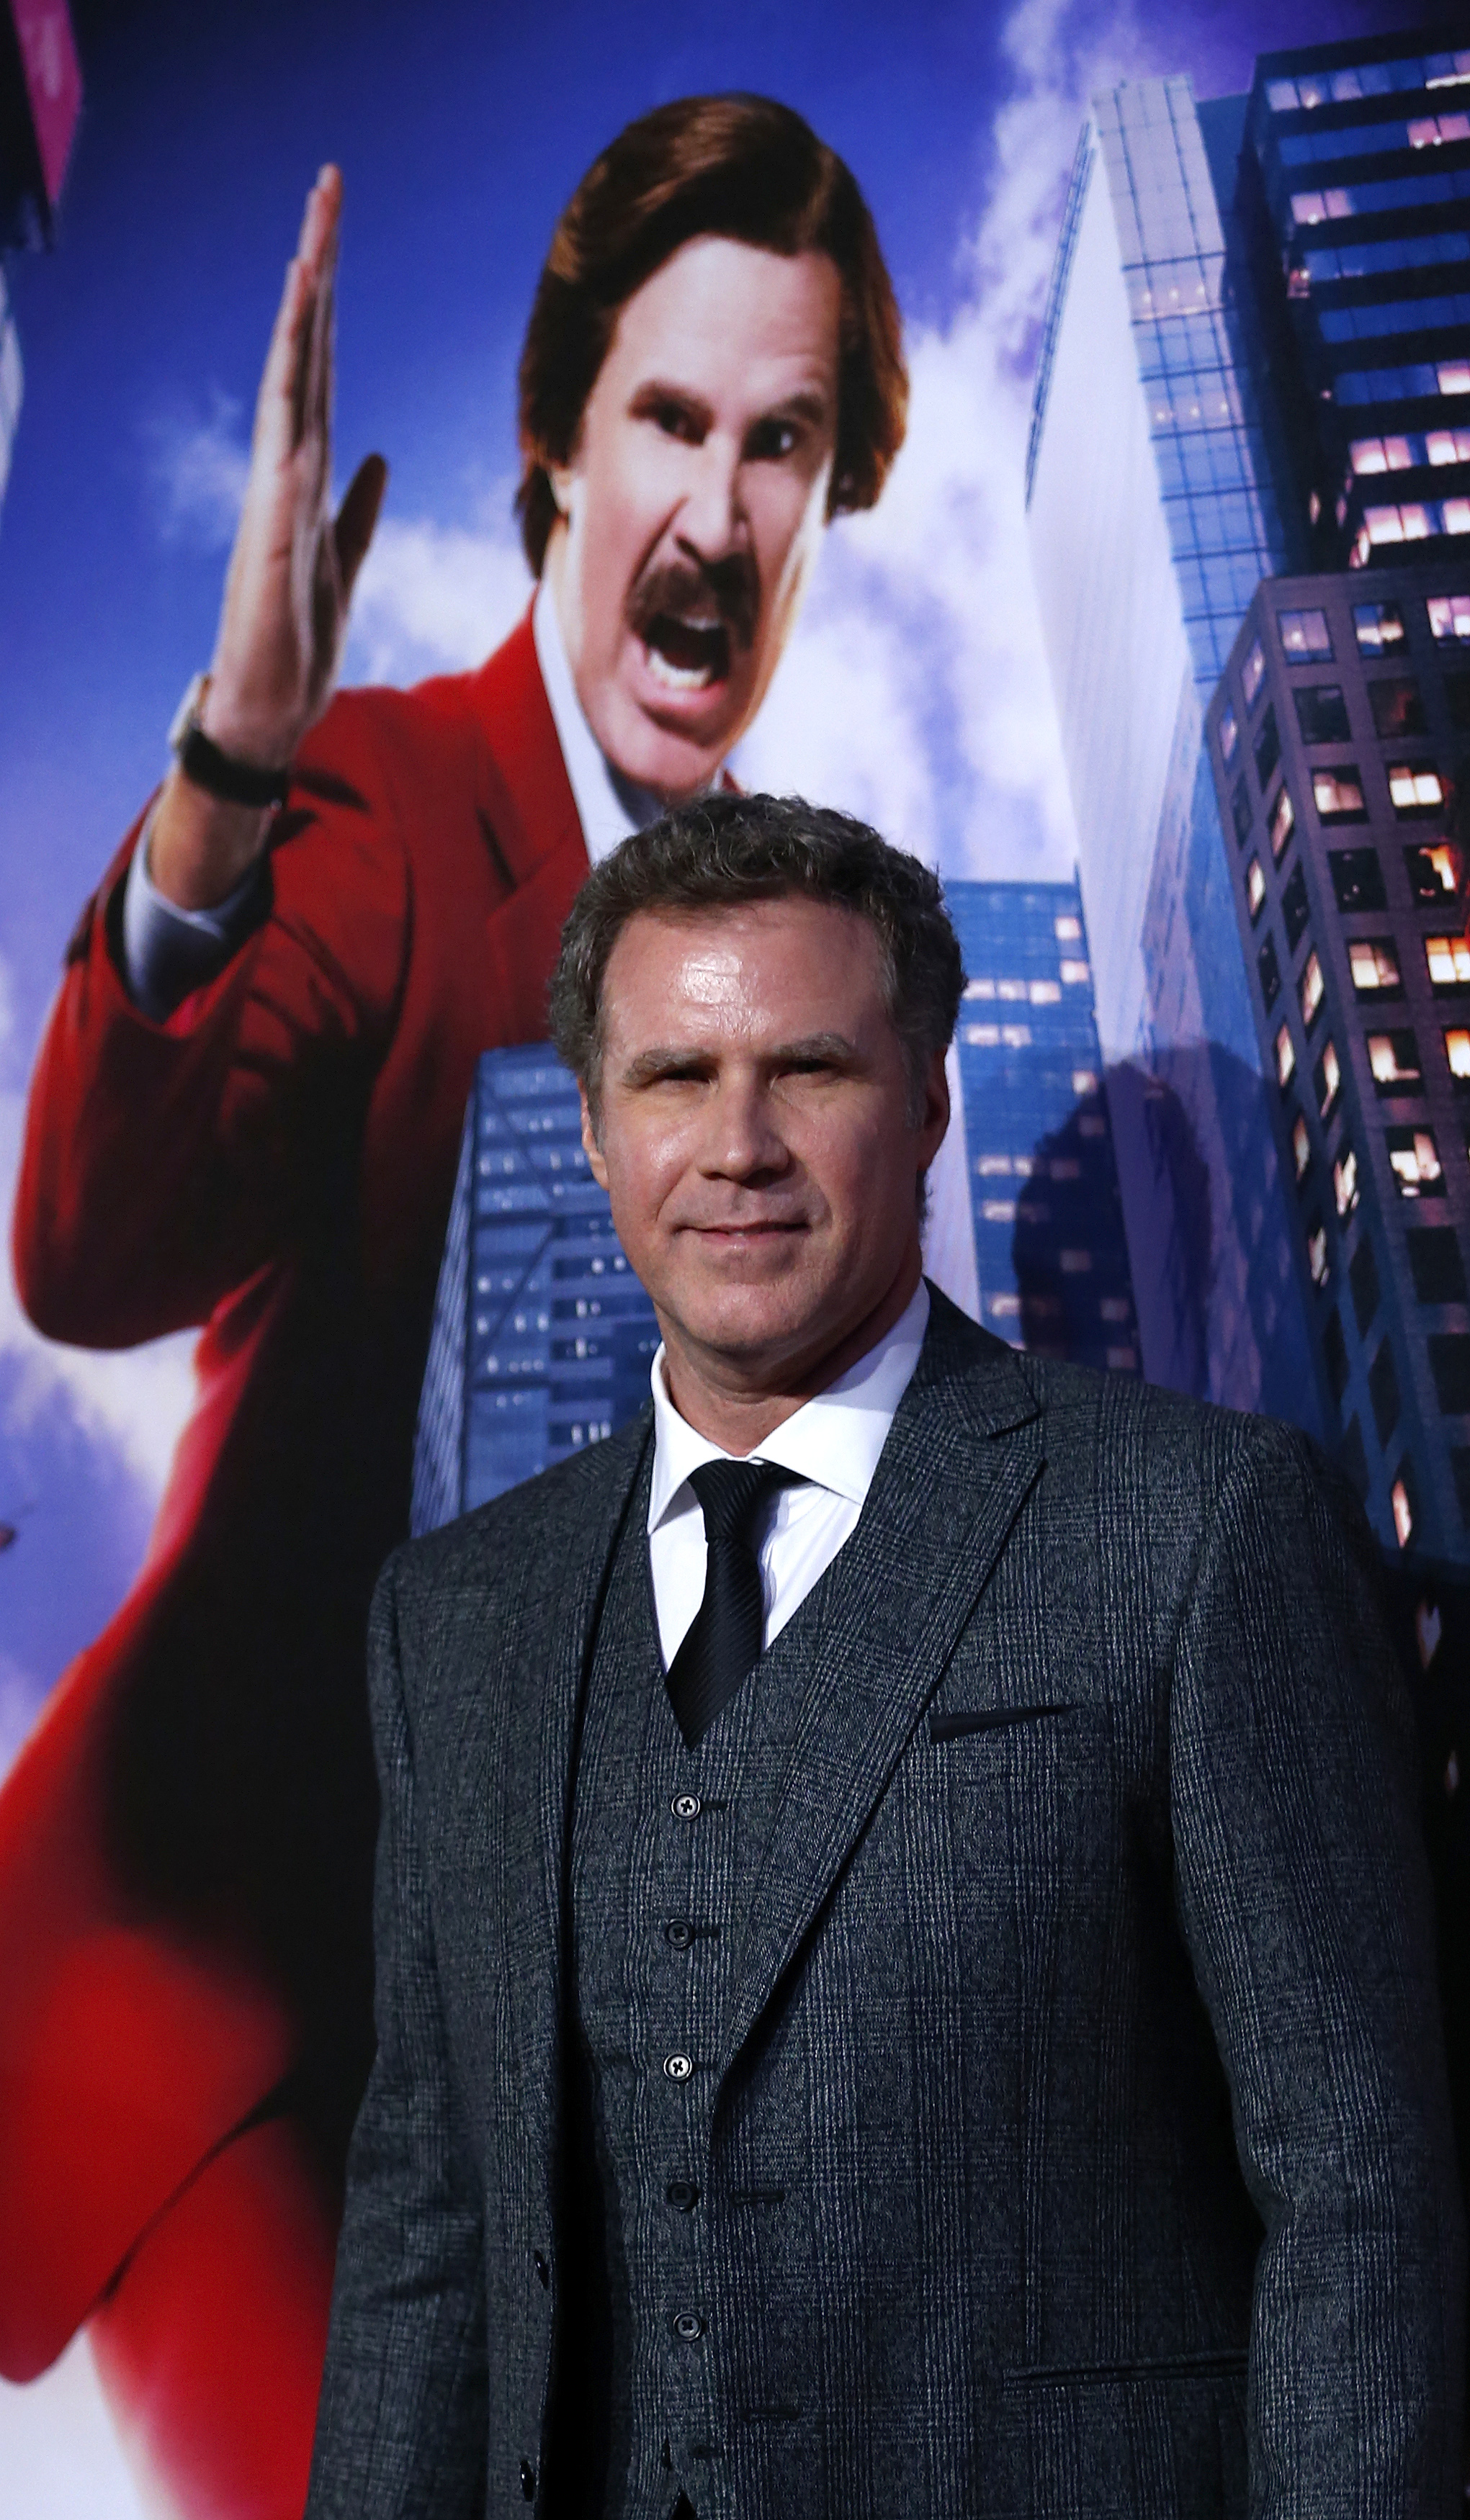 Actor Will Ferrell poses at the UK Premiere of the film Anchorman 2 in Leicester Square, London